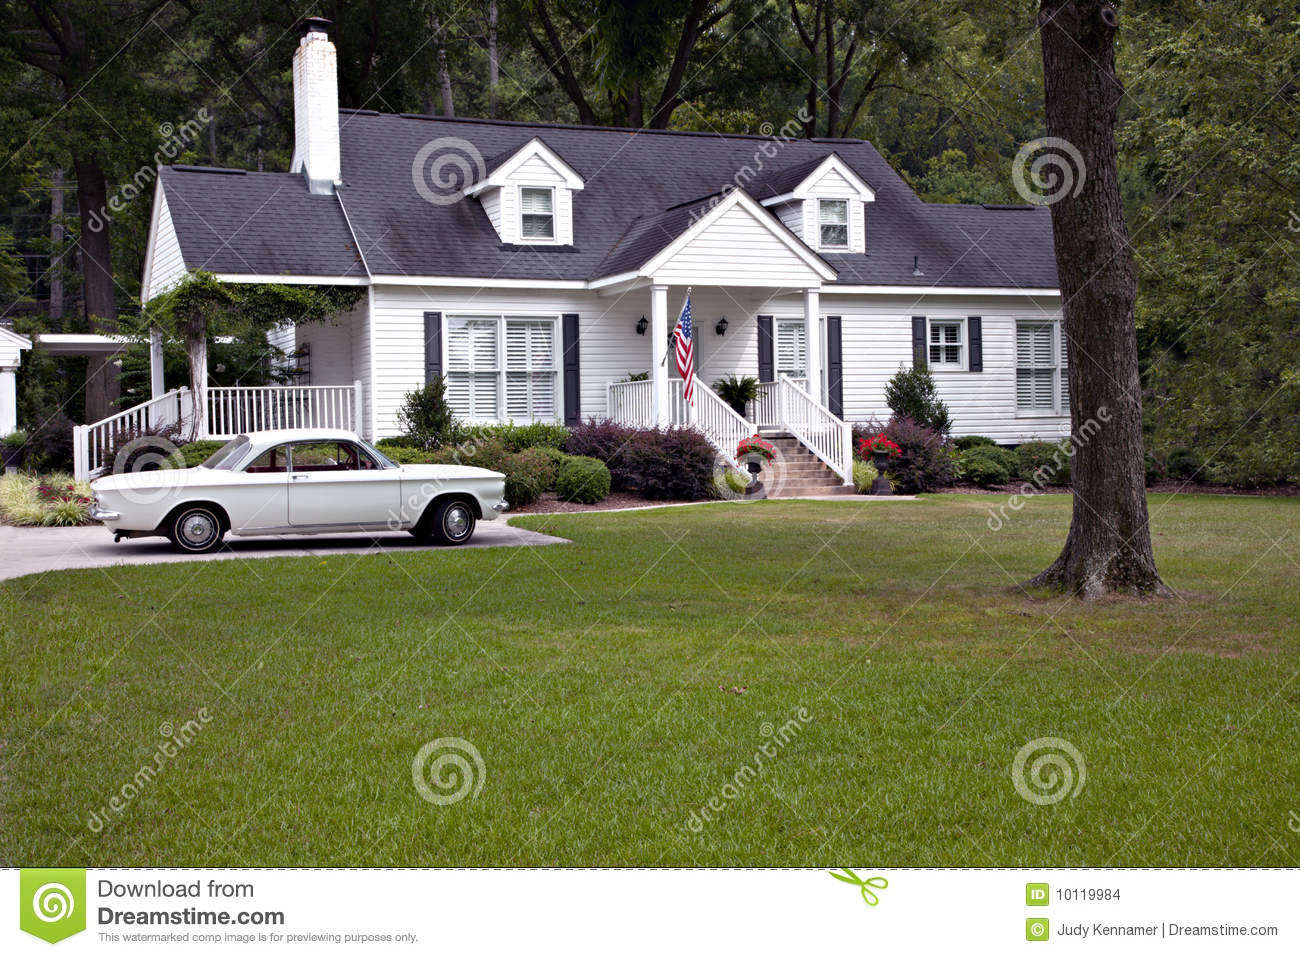 1950S House Pleasing 1950's House With Flag And Car Stock Images  Image 10119984 Inspiration Design